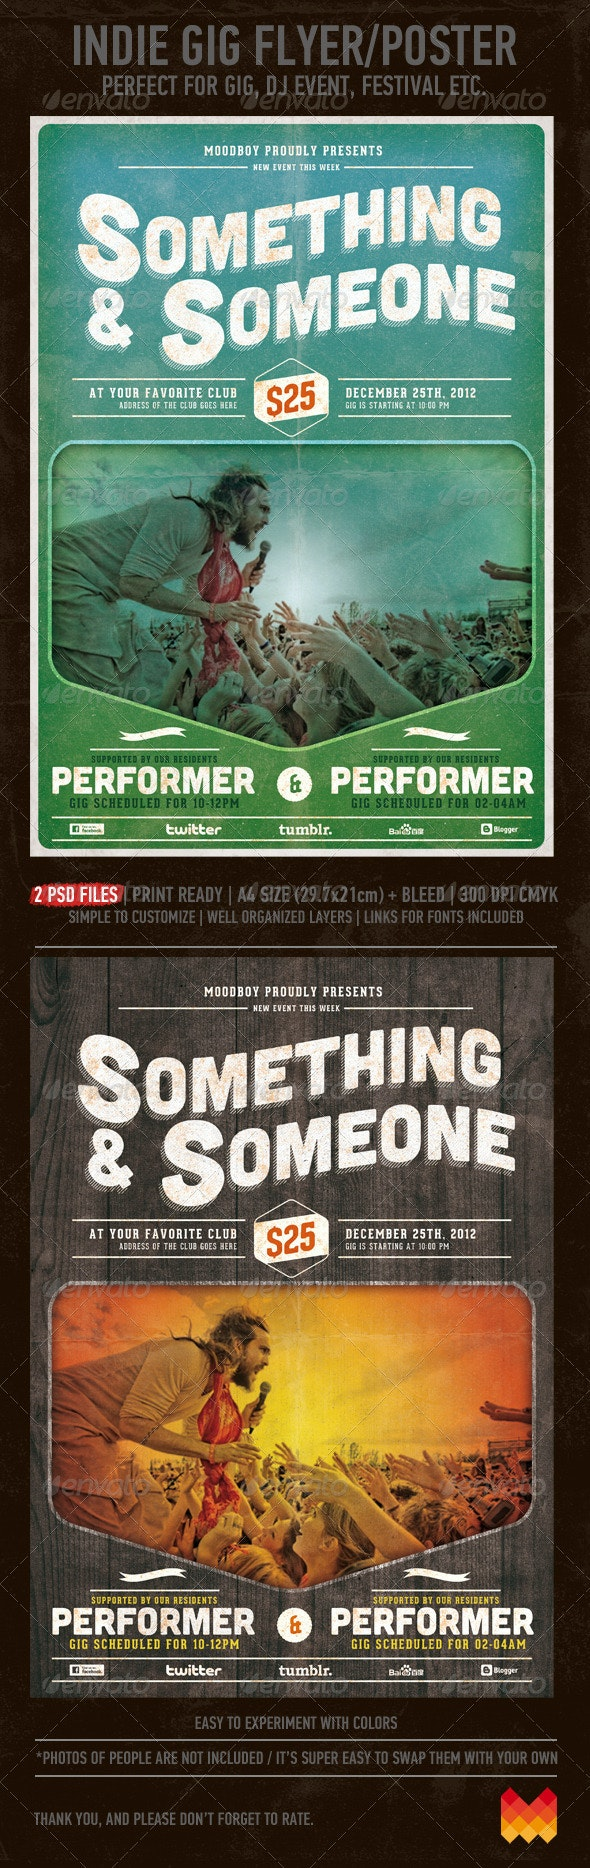 Indie Gig Flyer/Poster - Events Flyers